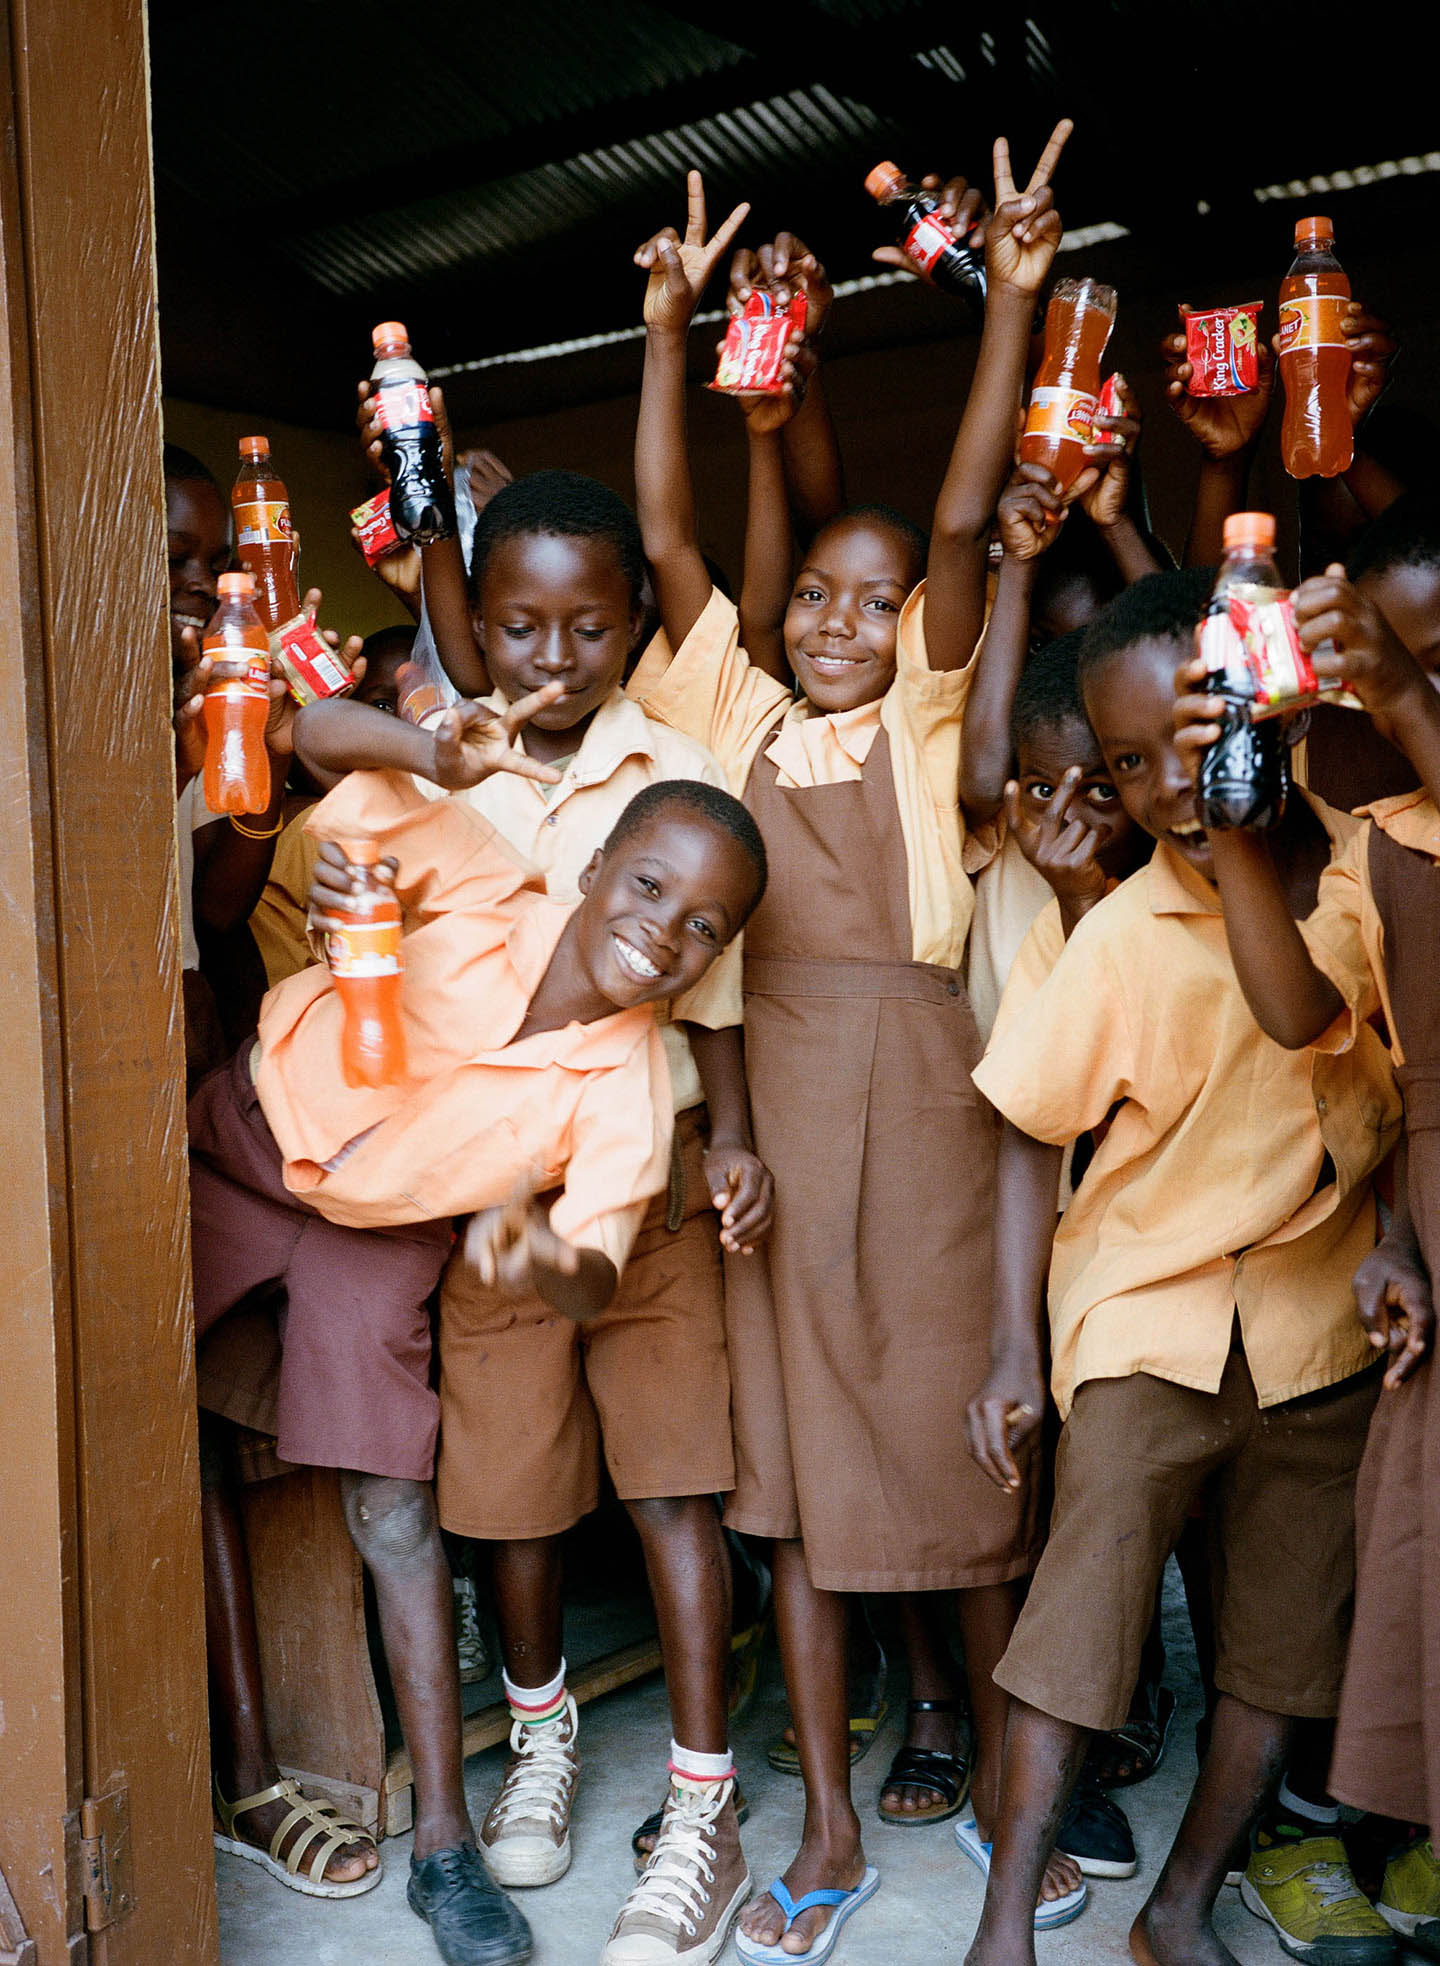 The radiant students in Ghana really taught us to slow down and simplify—that it doesn't take a lot to find contentment in life. A poignant reminder for the rest of us in the West. -